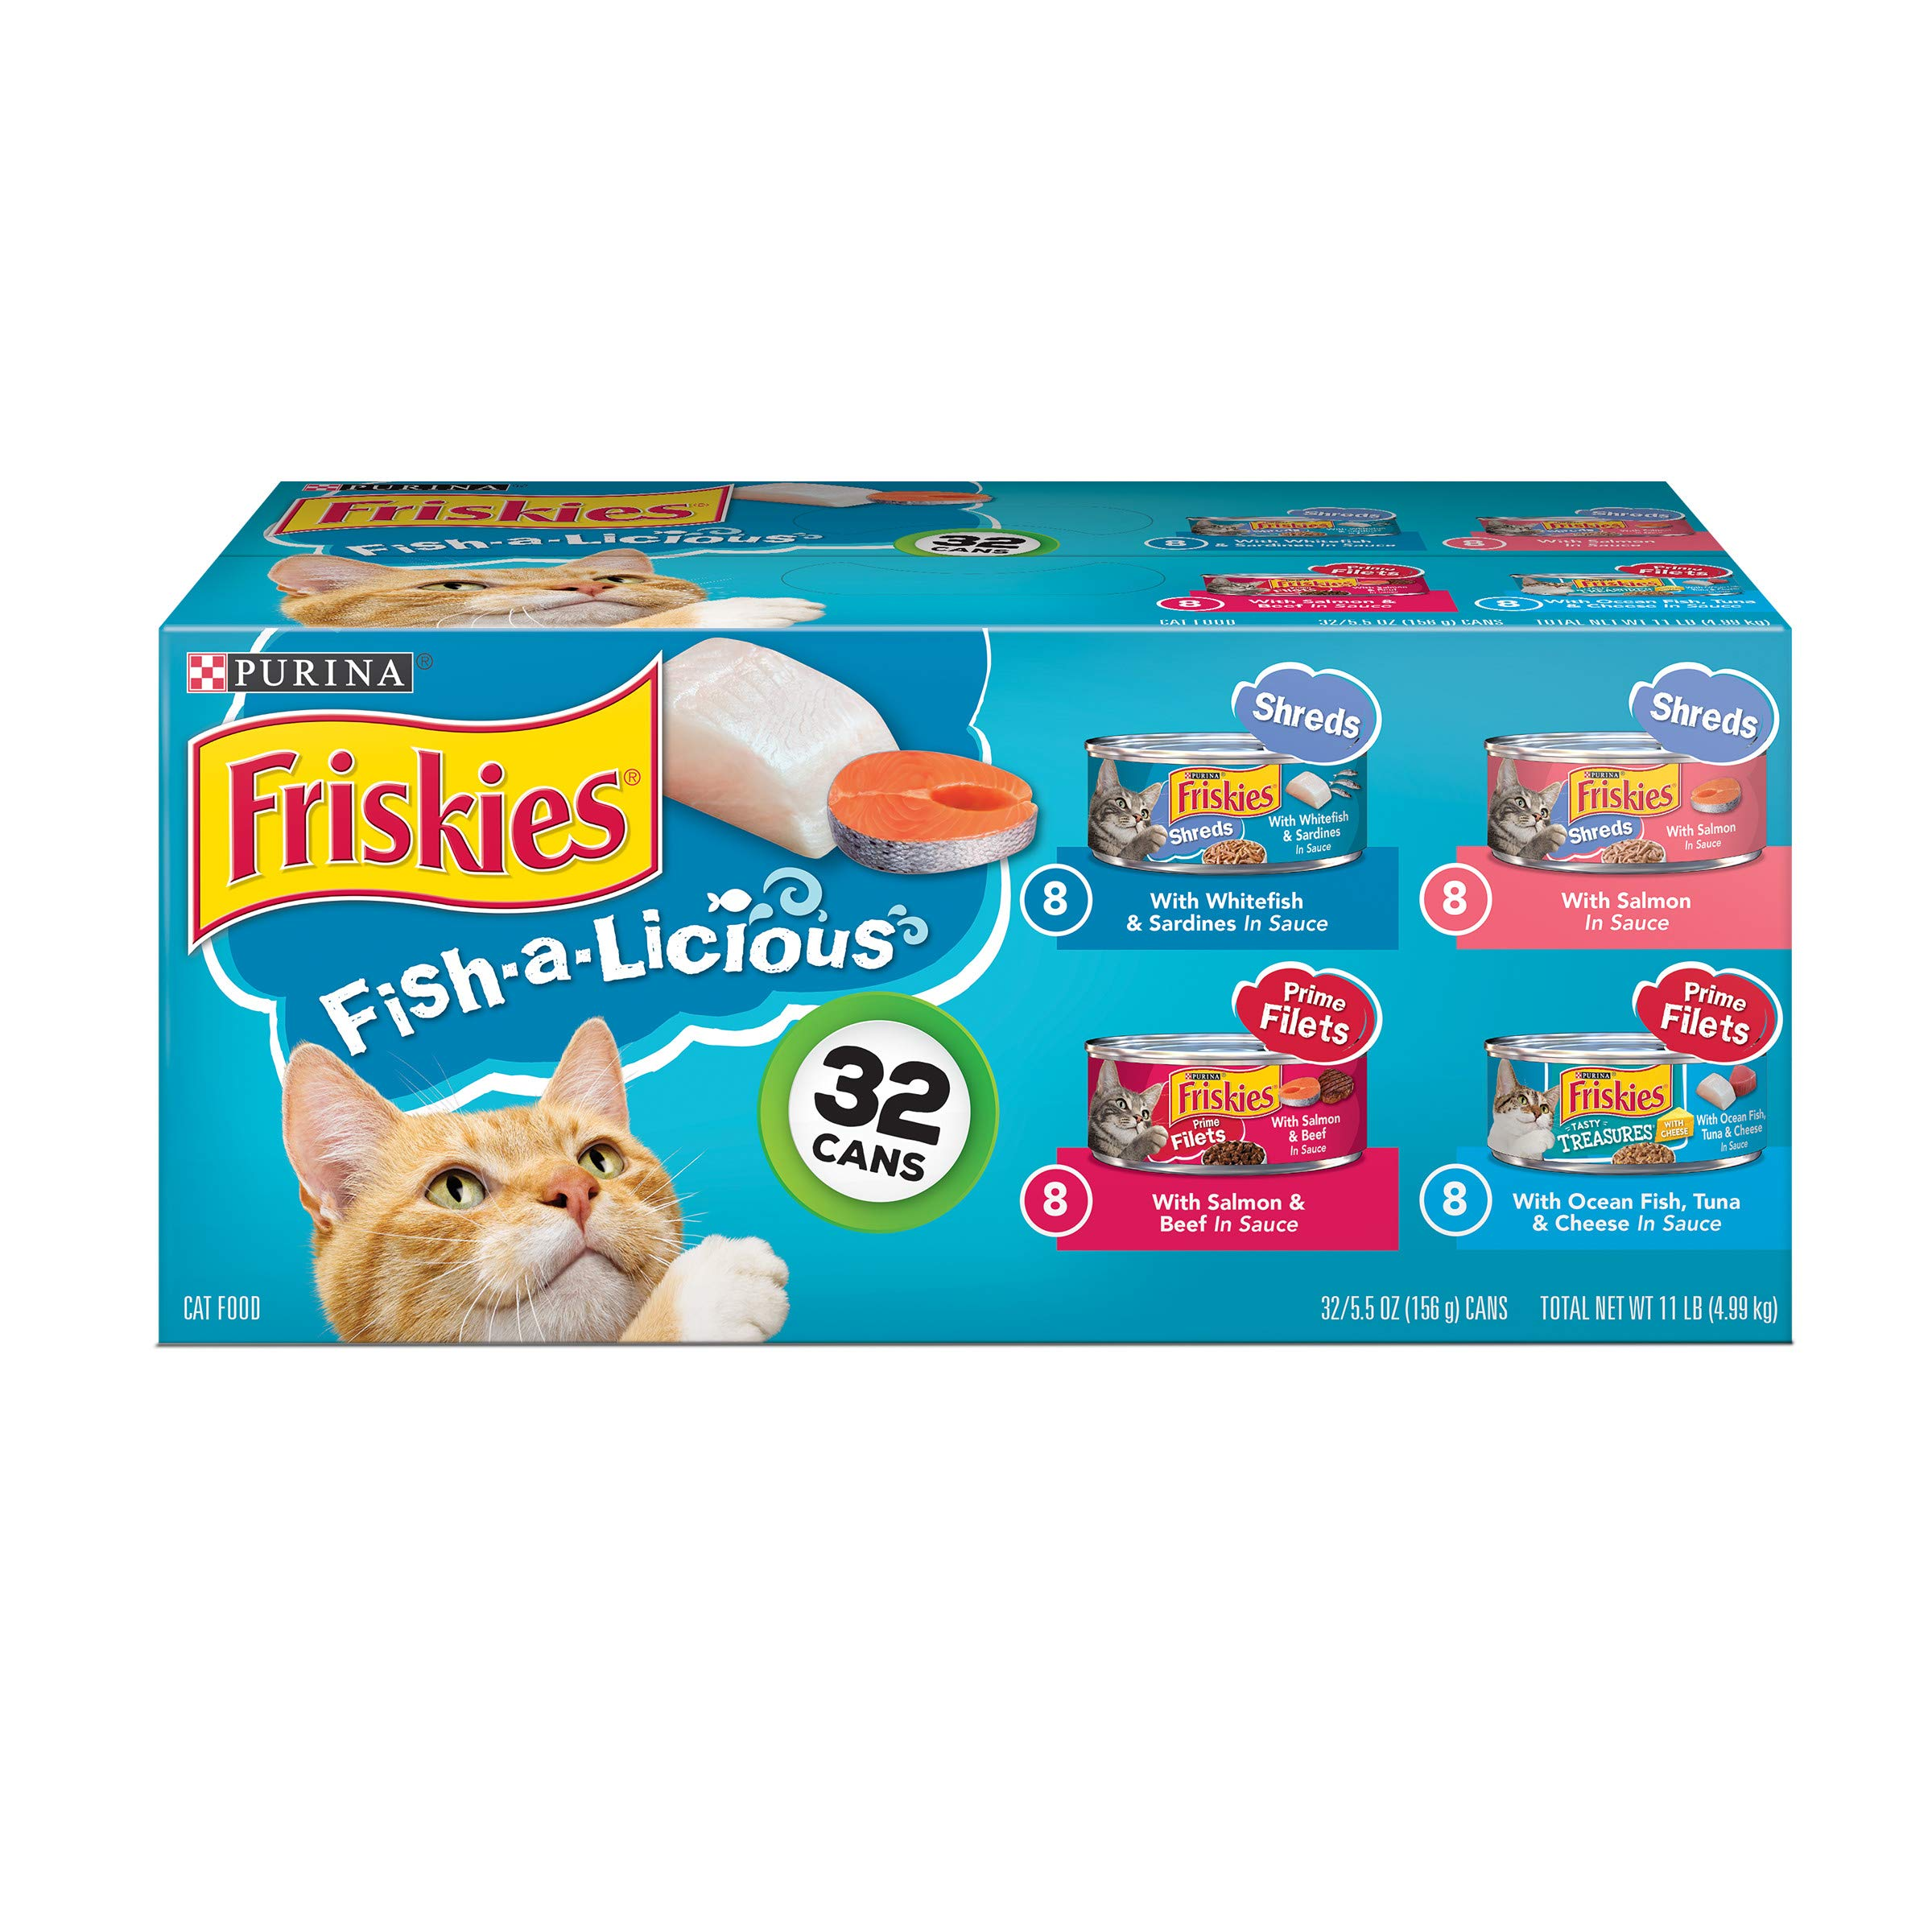 Purina Friskies Wet Cat Food Variety Pack, Fish-A-Licious Shreds, Prime Filets & Tasty Treasures - (32) 5.5 oz. Cans by Purina Friskies